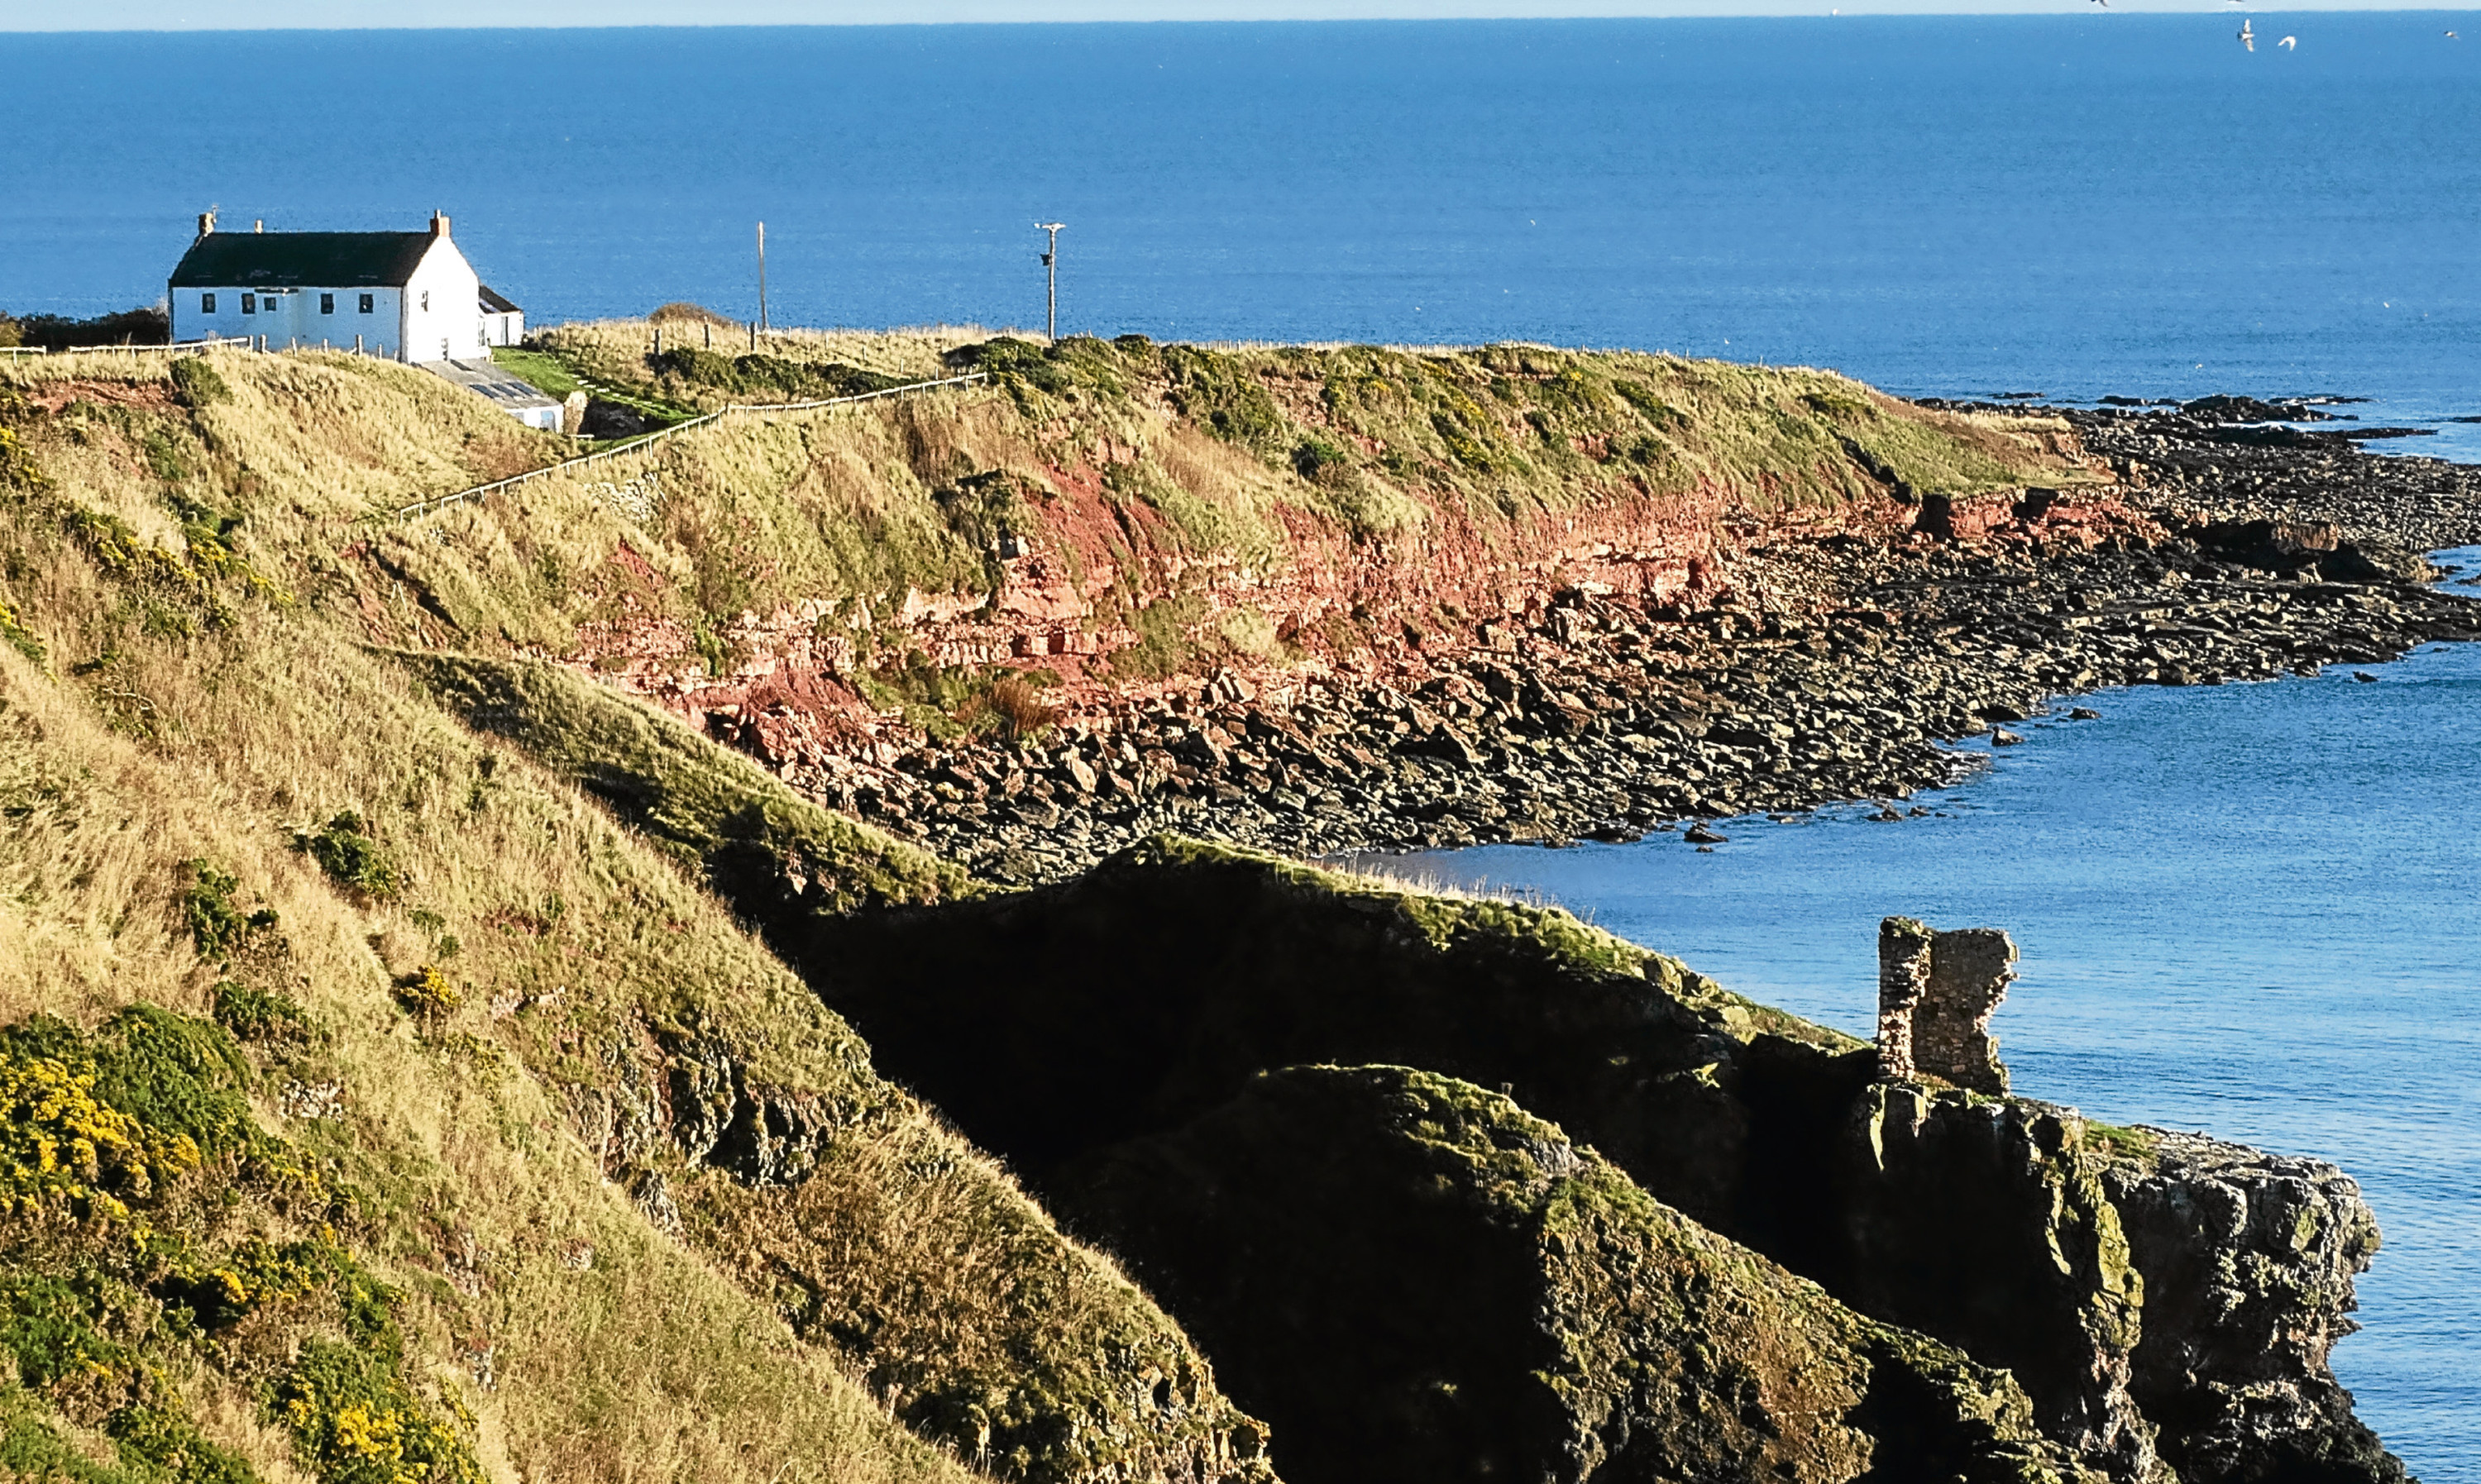 All that remains of the Kaim of Mathers, or the Cannibal Laird's Castle, whose history contains a gruesome story of murder.